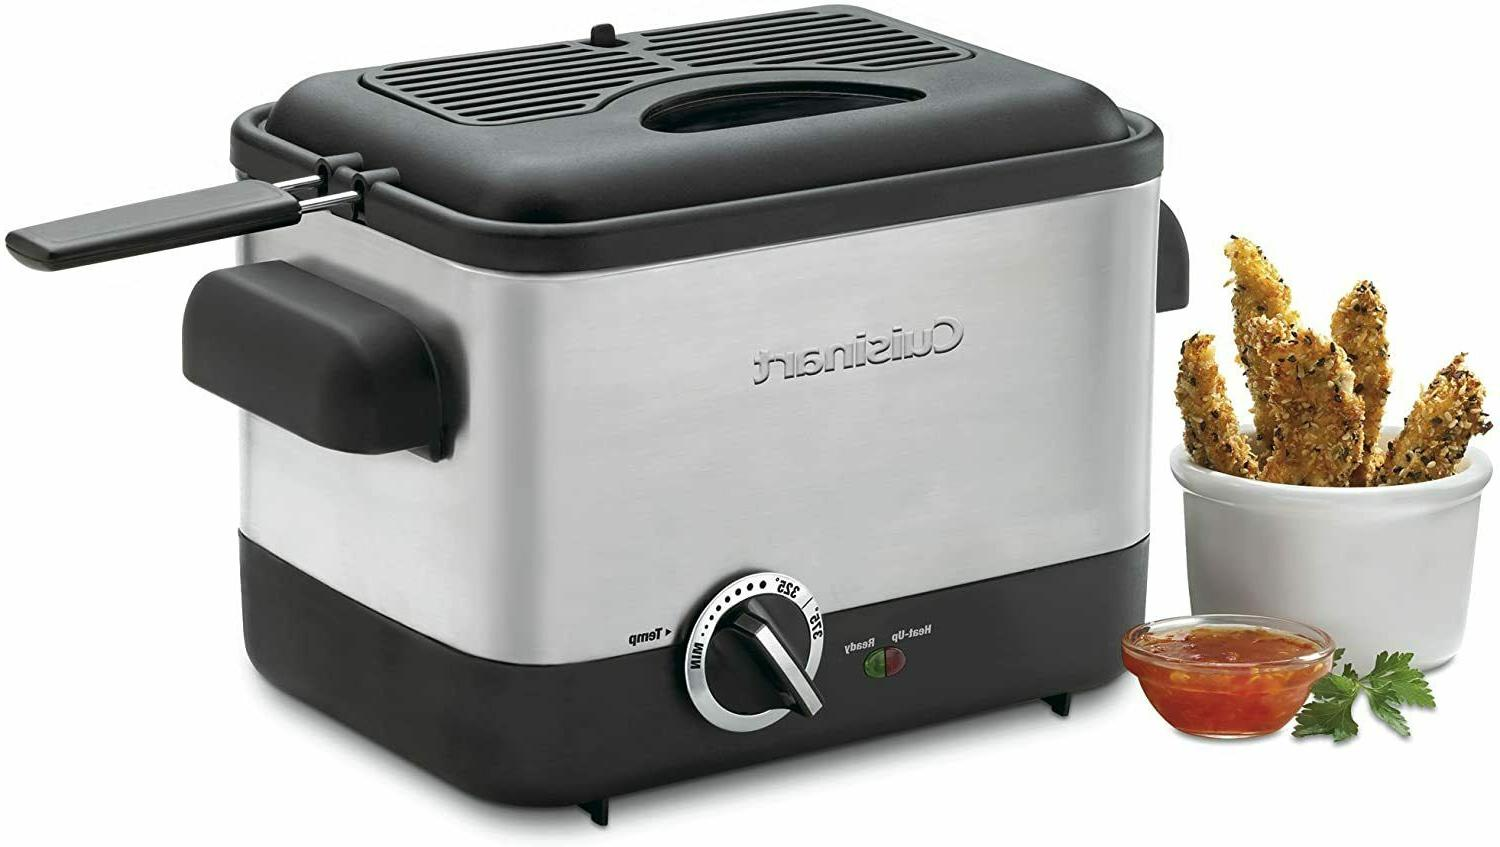 Cuisinart CDF-100 Compact 1.1-Liter Deep Fryer, Brushed Stai